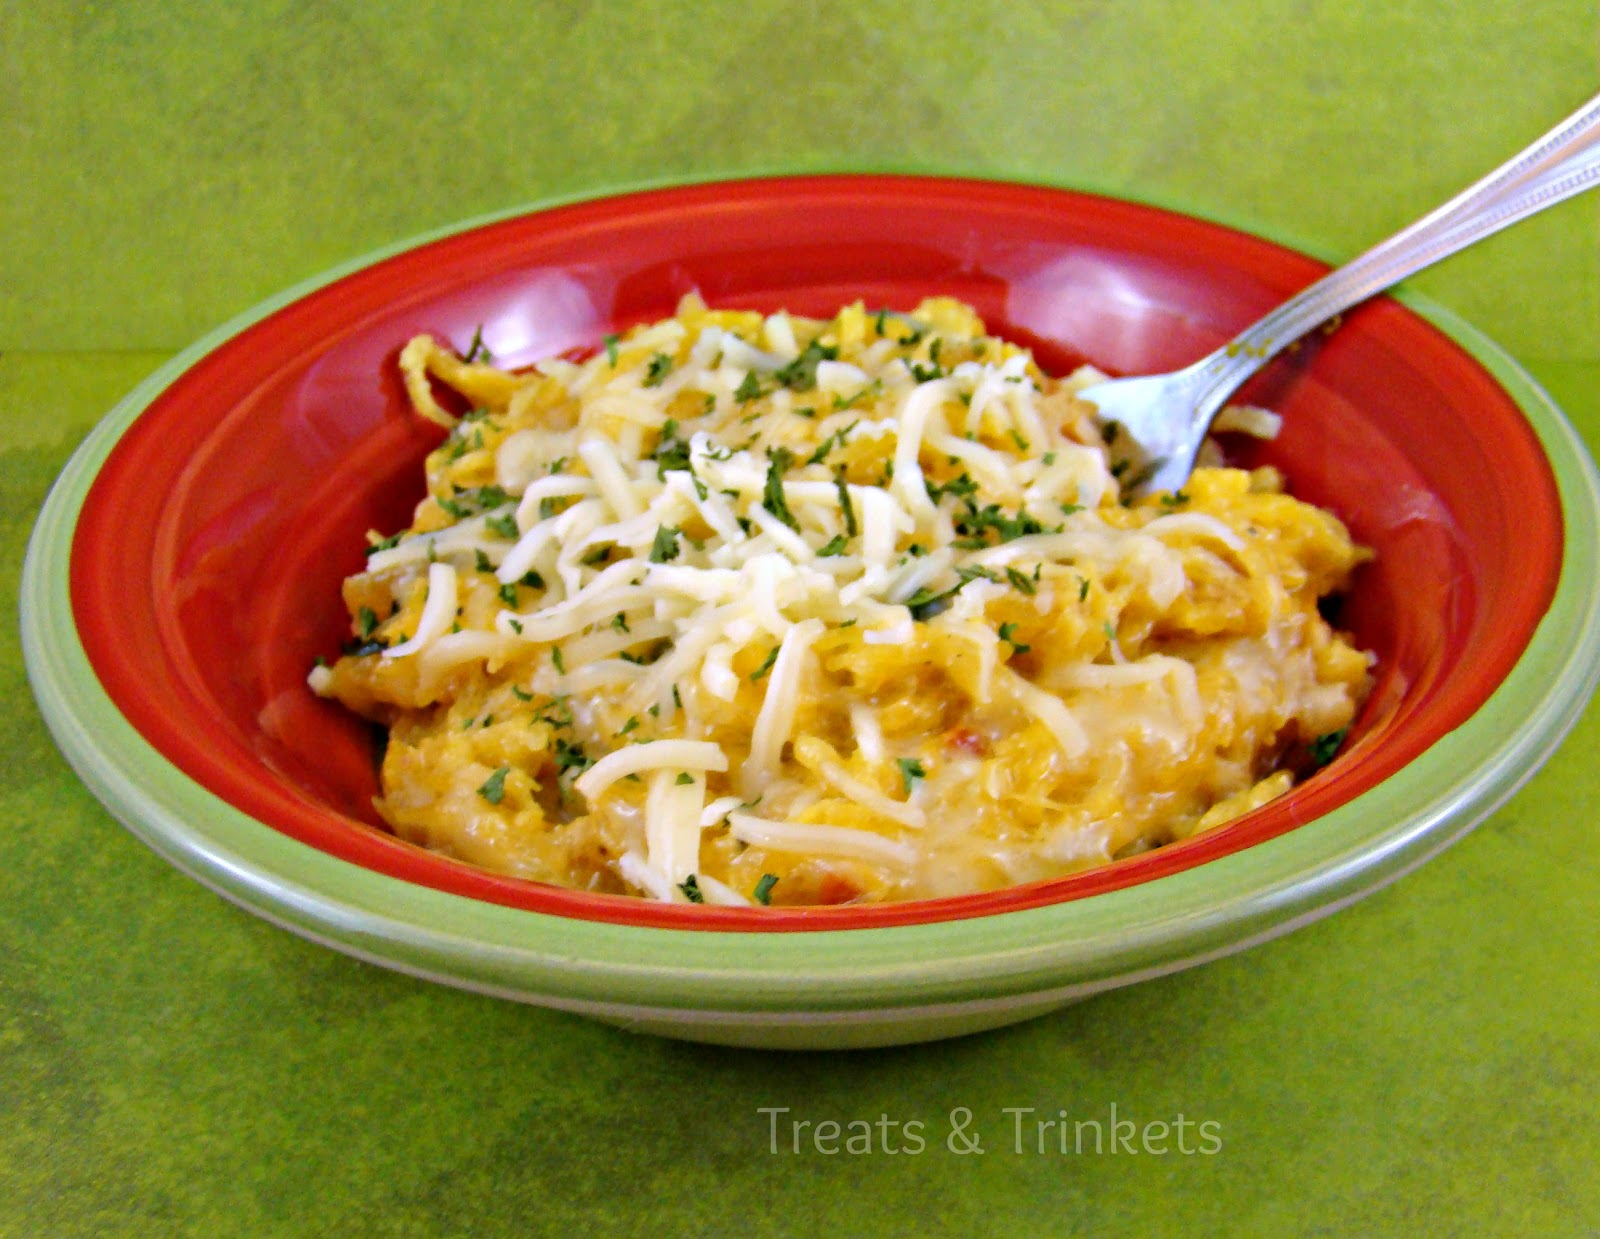 ... goat cheese from squash bacon and goat cheese pasta with basil recipes